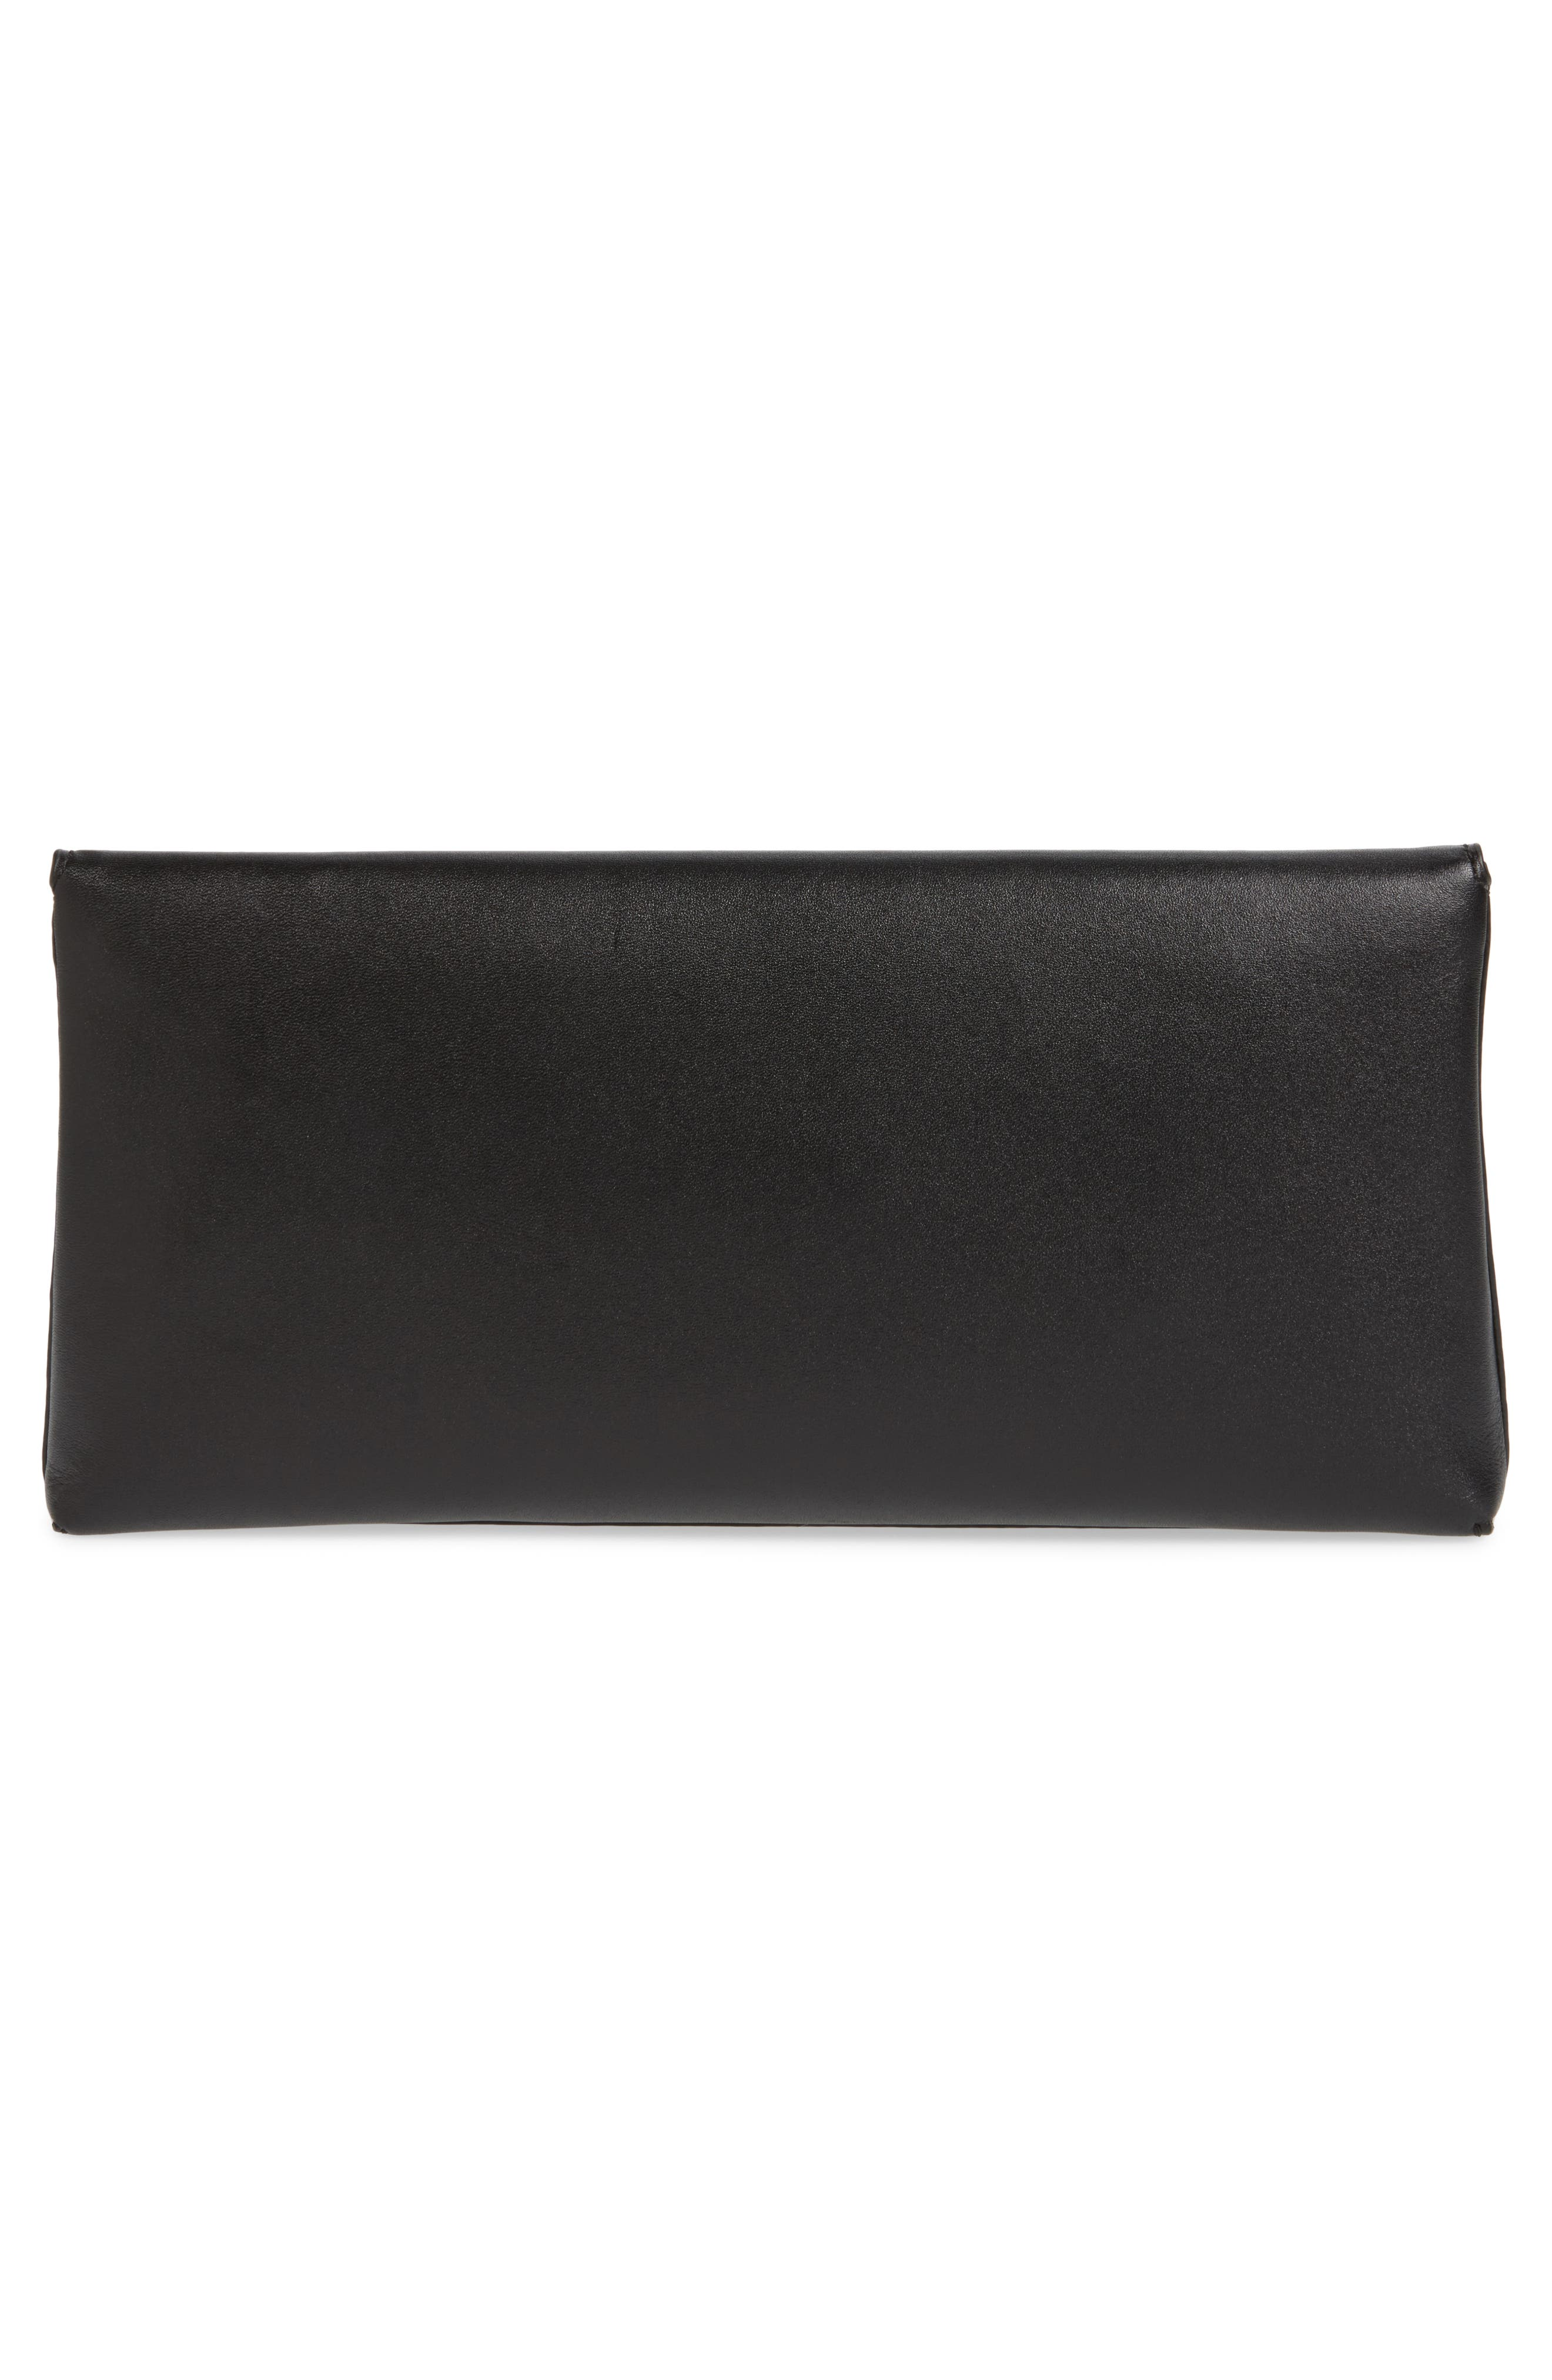 TORY BURCH, Miller Leather Clutch, Alternate thumbnail 4, color, BLACK